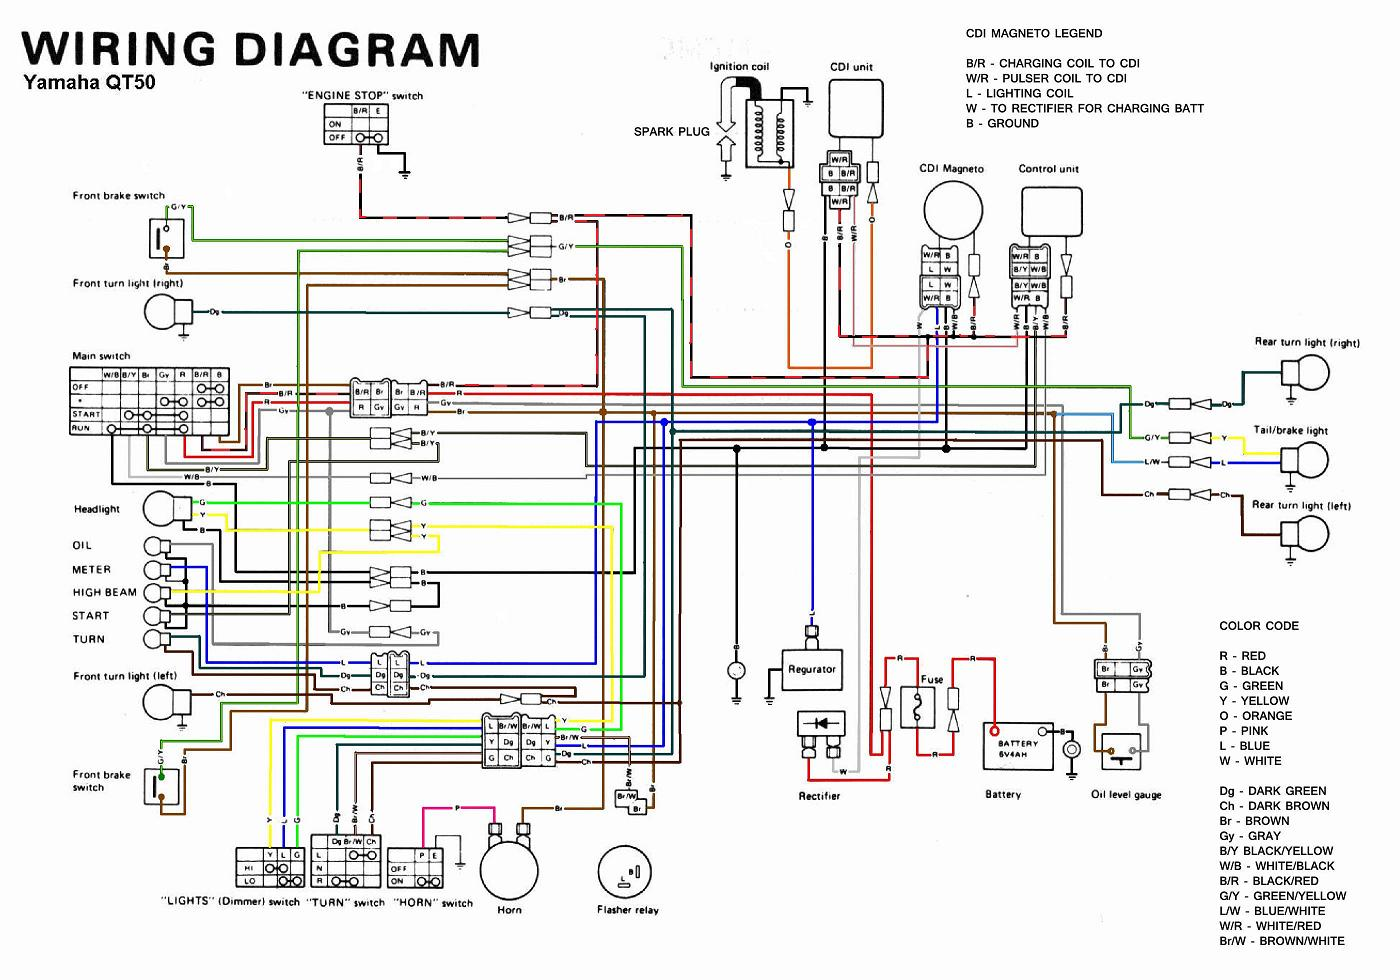 Yamaha QT50 Wiring Diagram 1980 honda express wiring diagram 1979 yamaha 175 it wiring  at highcare.asia